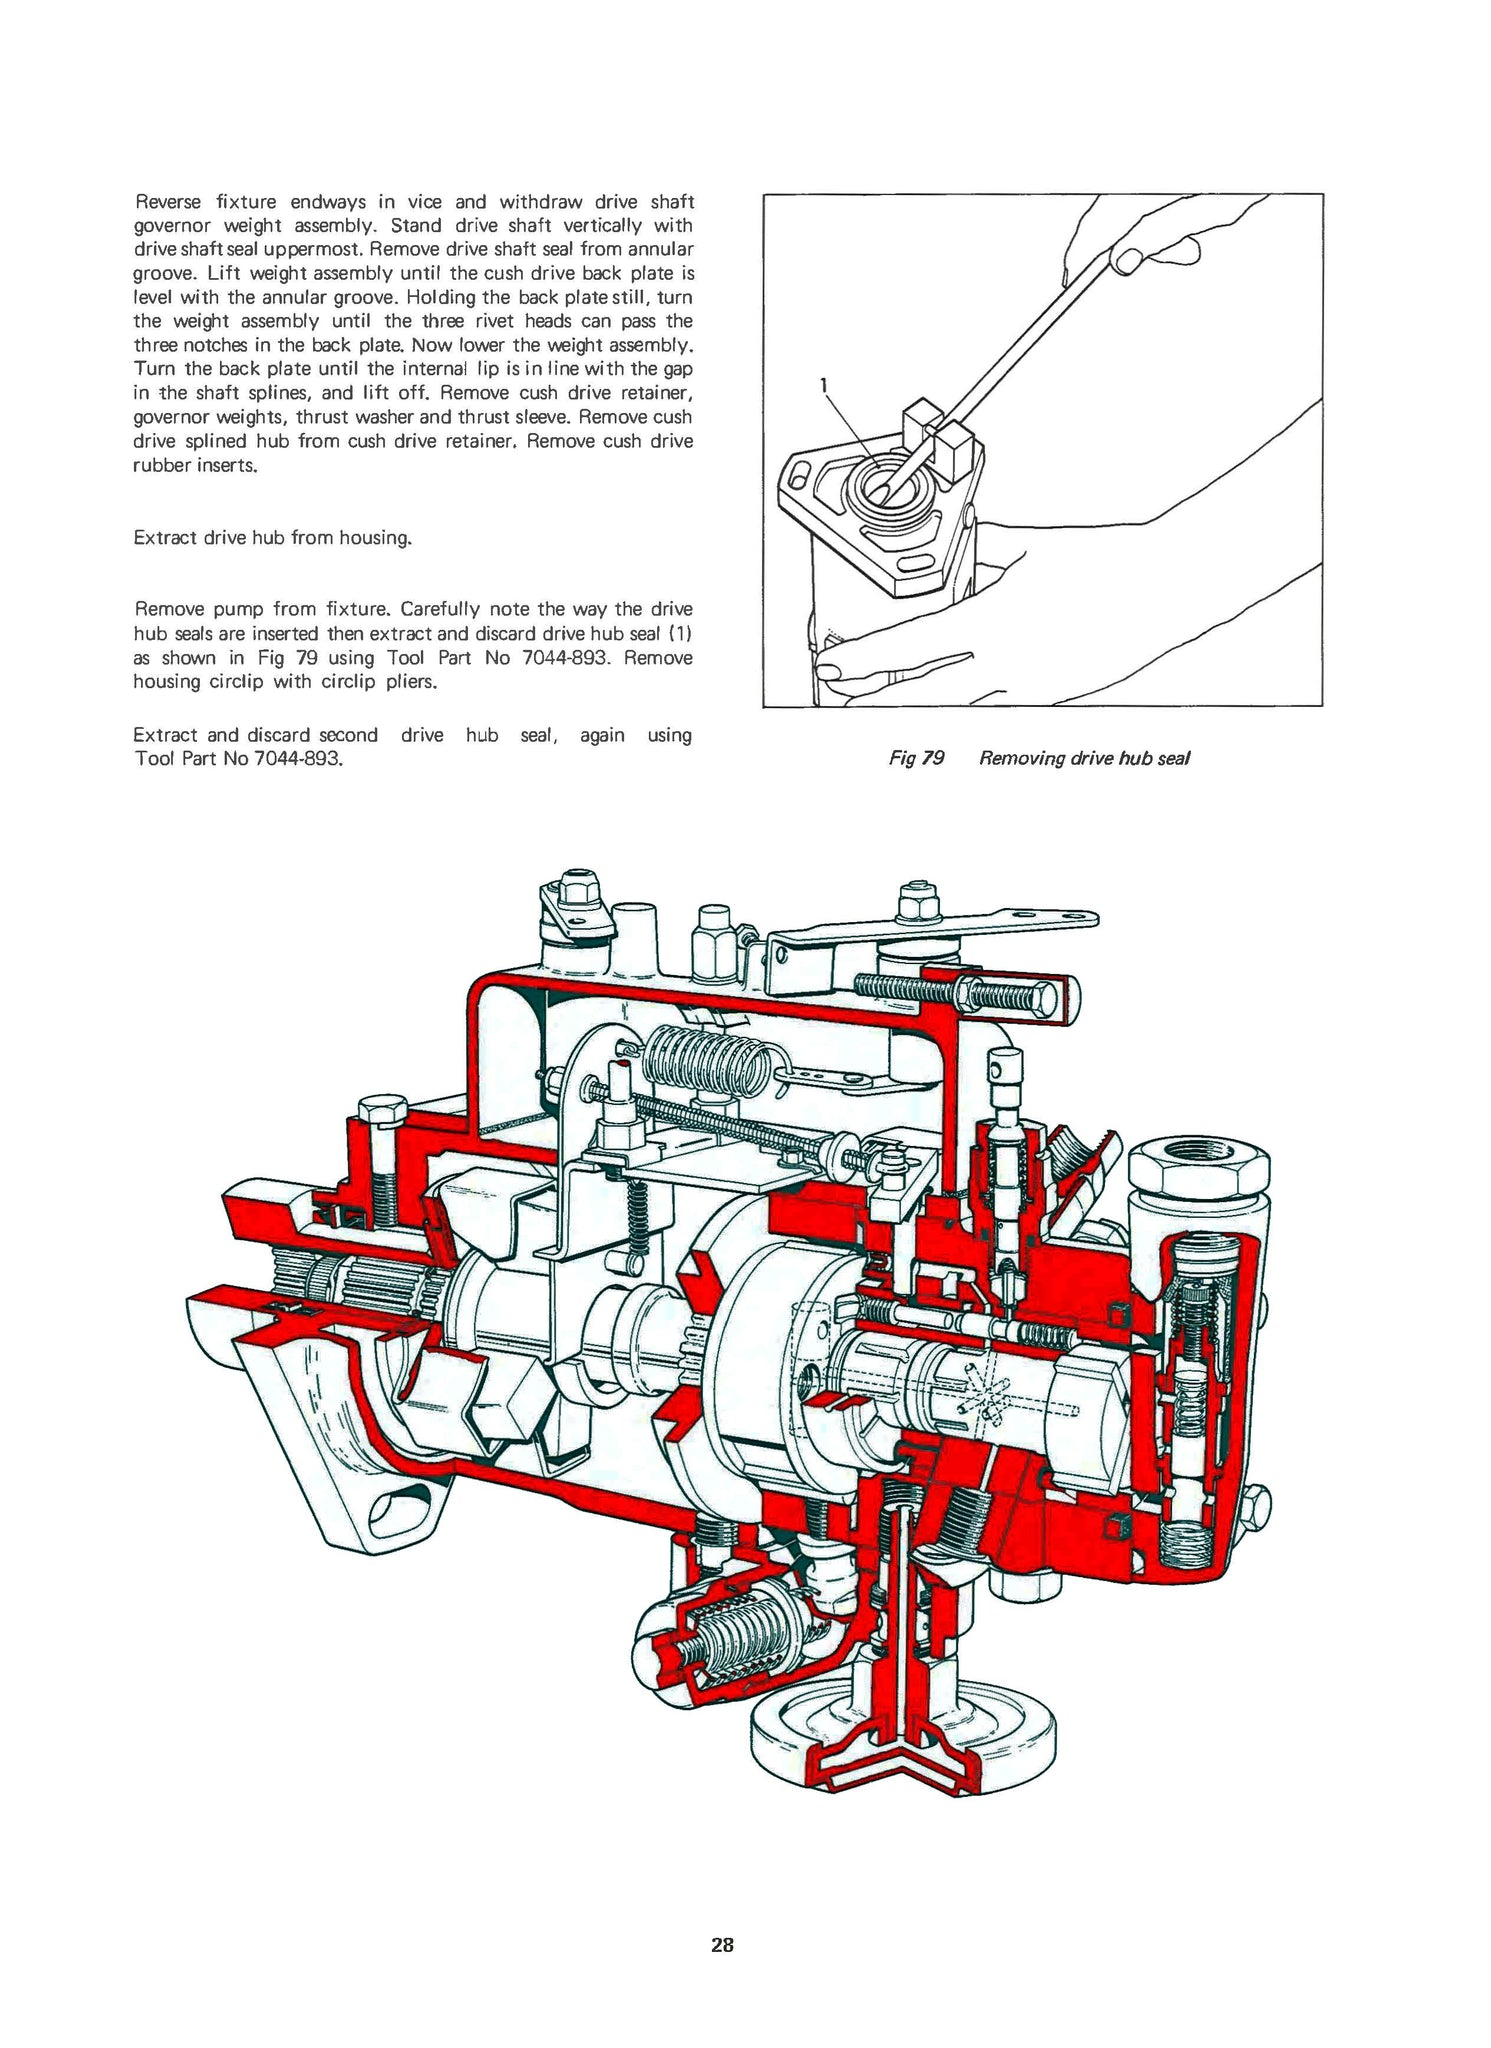 Stanadyne Fuel Injection Pump Manual Manual Guide